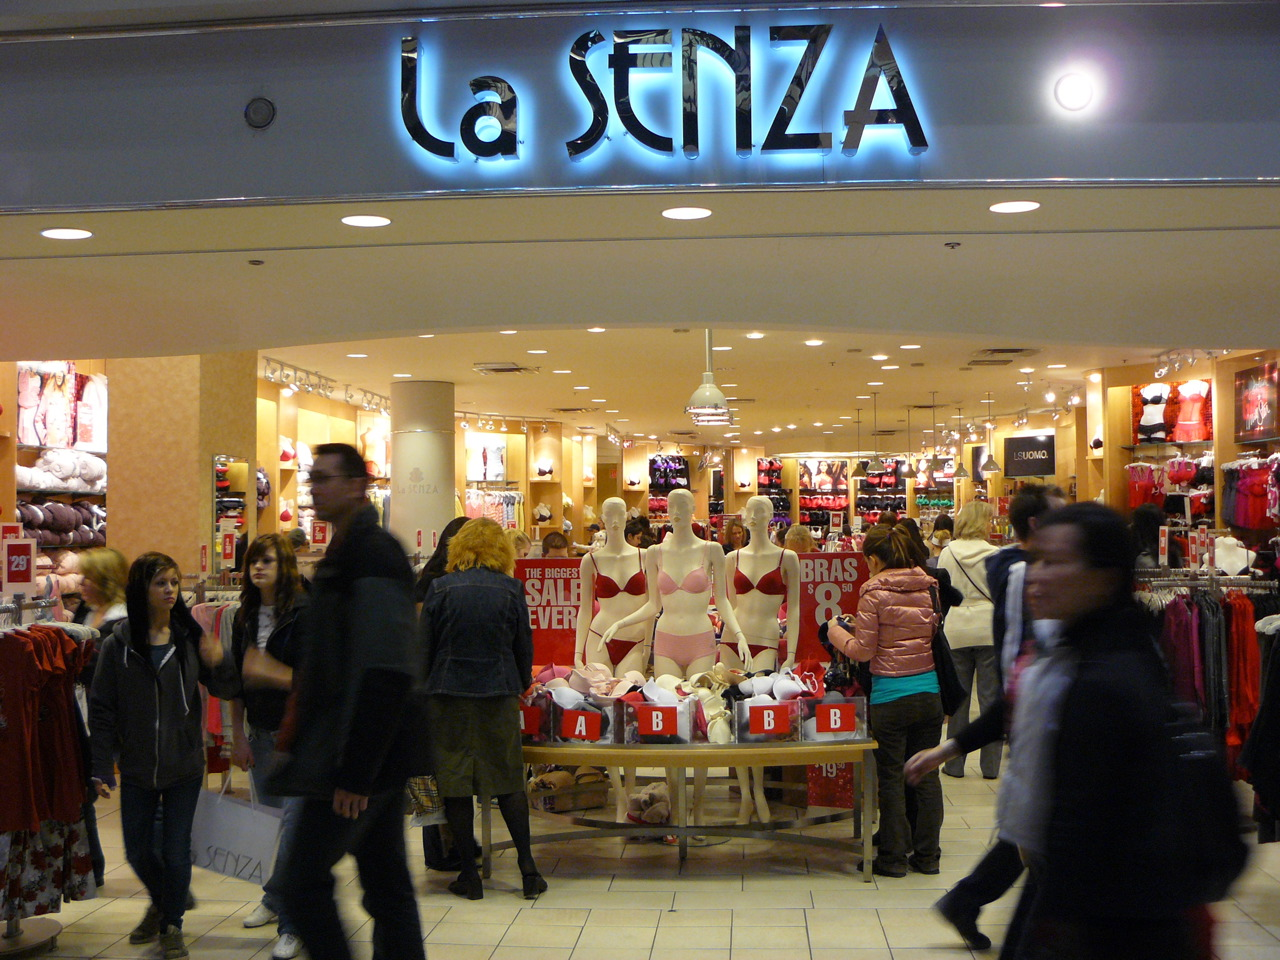 Boxing Day deals see thousands hit Calgary stores By Tracy Nagai Reporter Calgary's biggest mall expects more than , shoppers will make their way through its doors this Boxing Day.